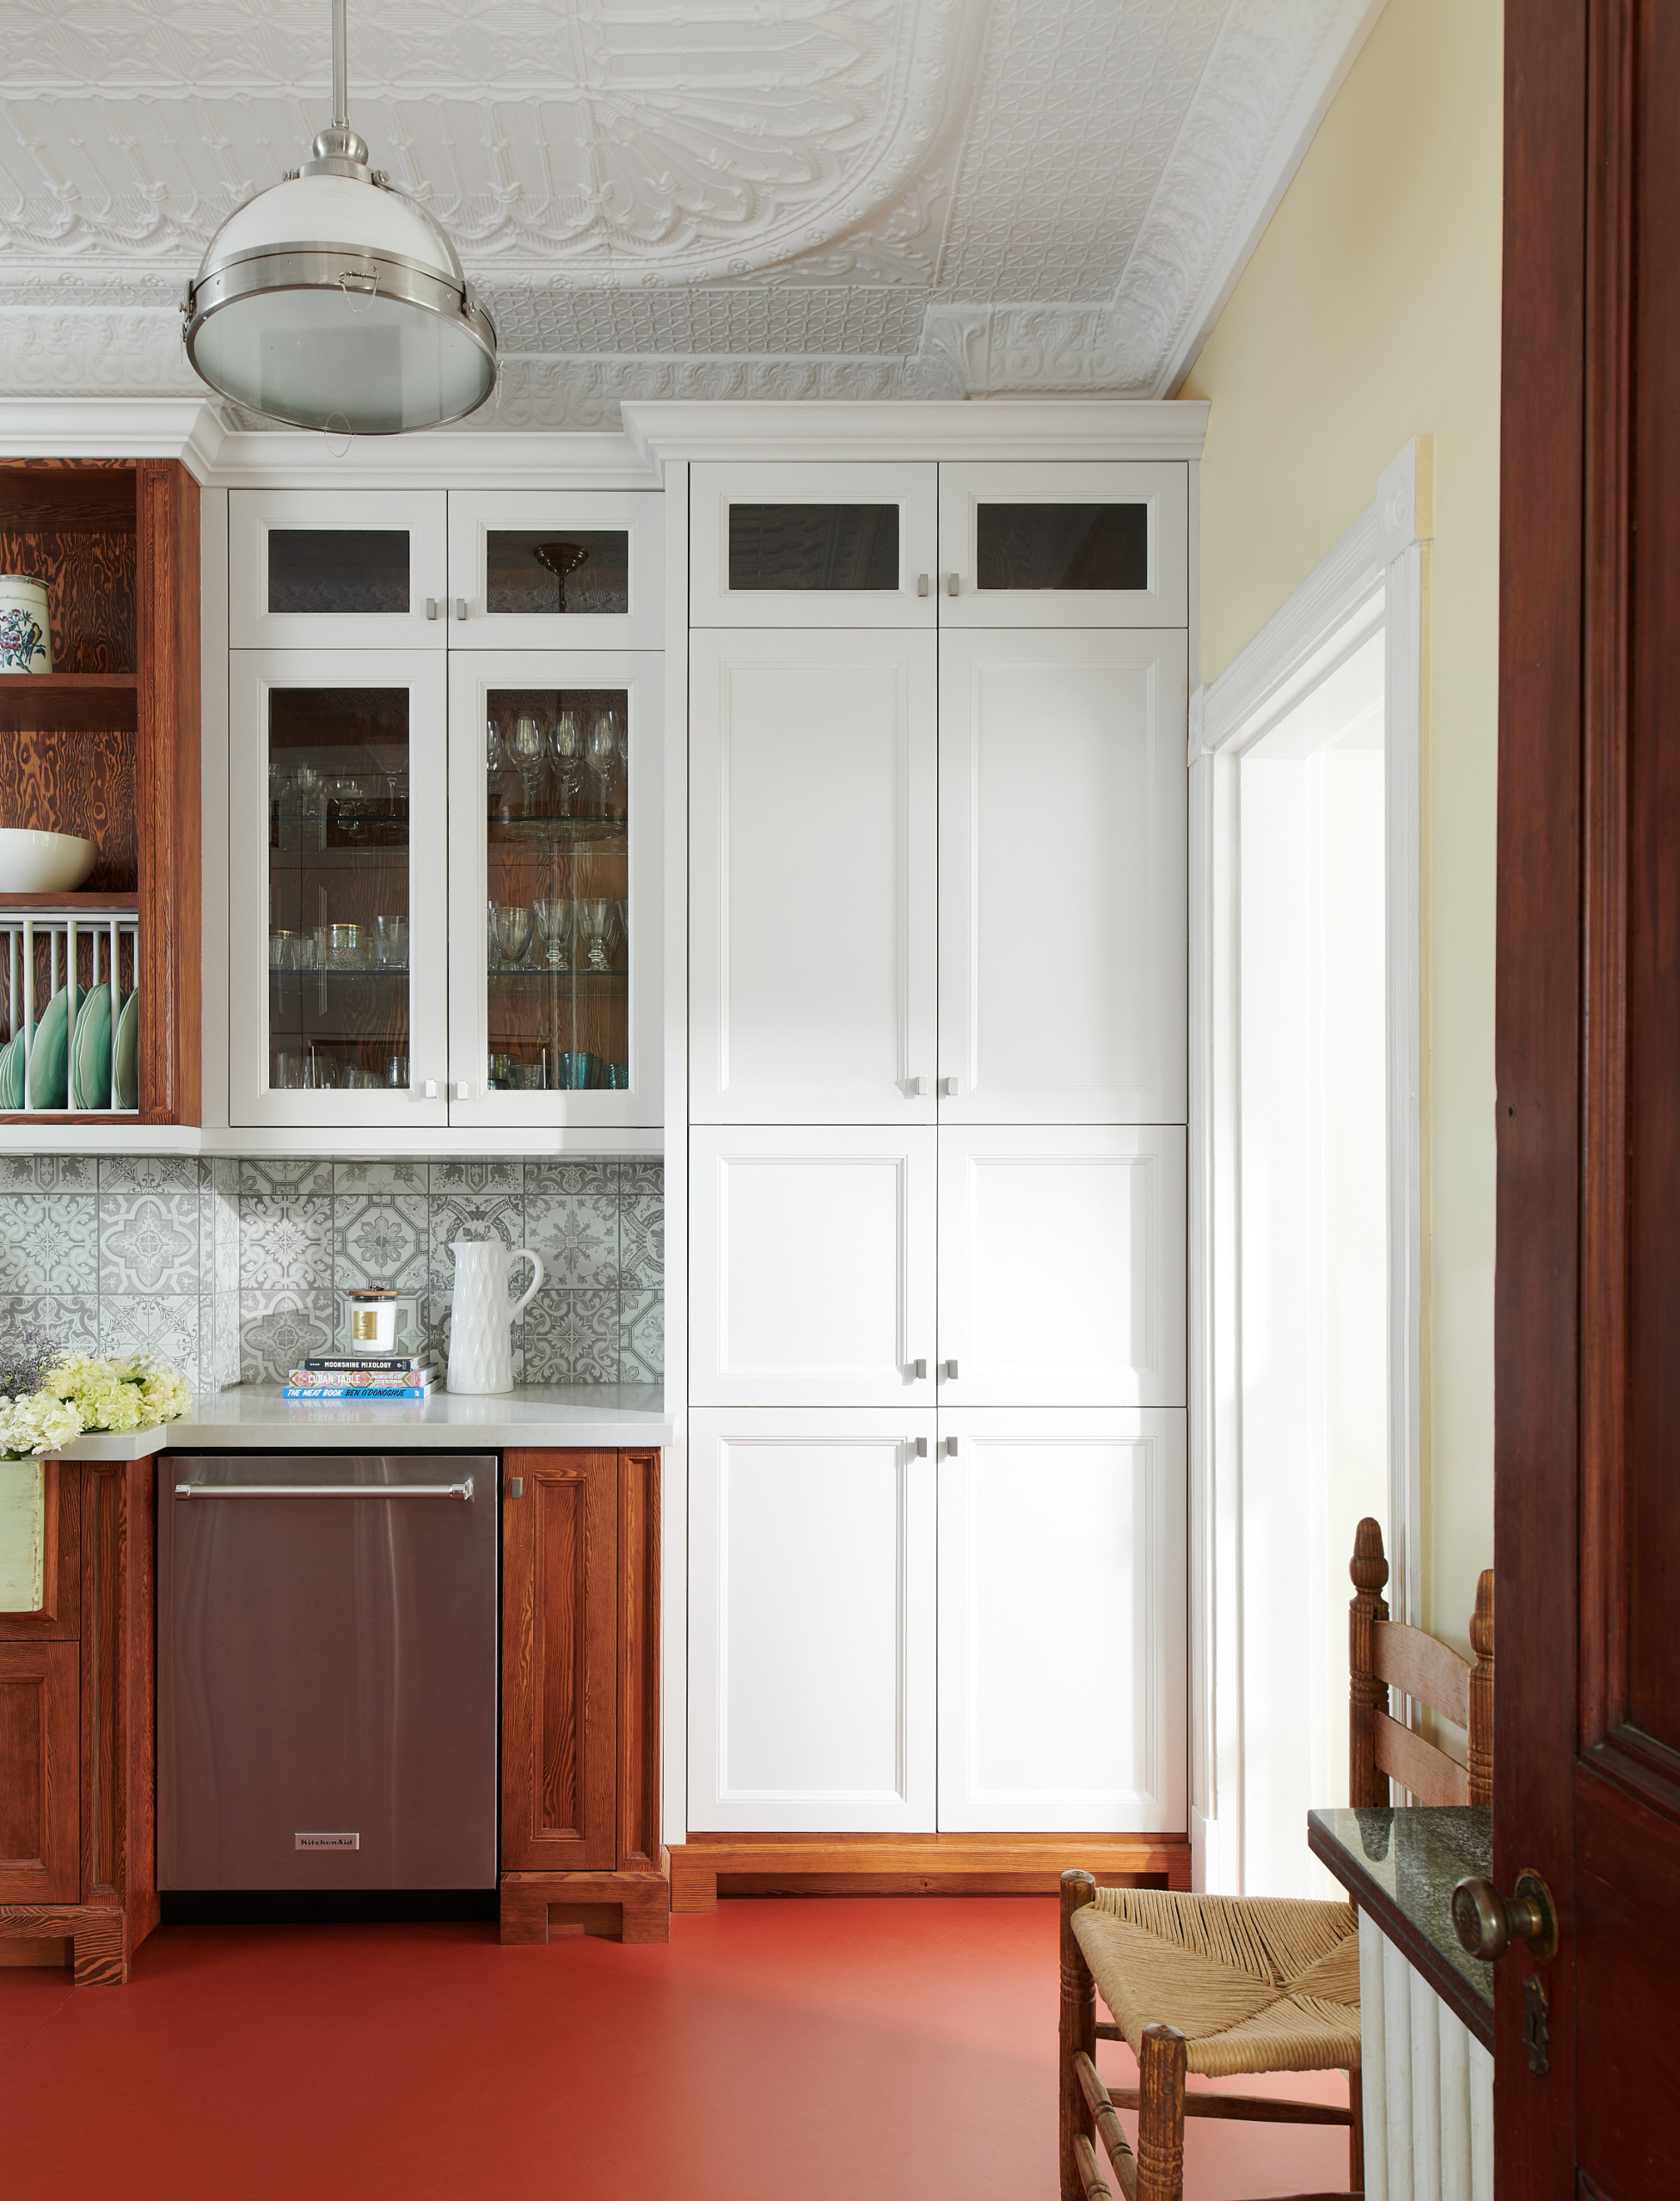 75 Beautiful Red Floor Kitchen Pictures Ideas March 2021 Houzz